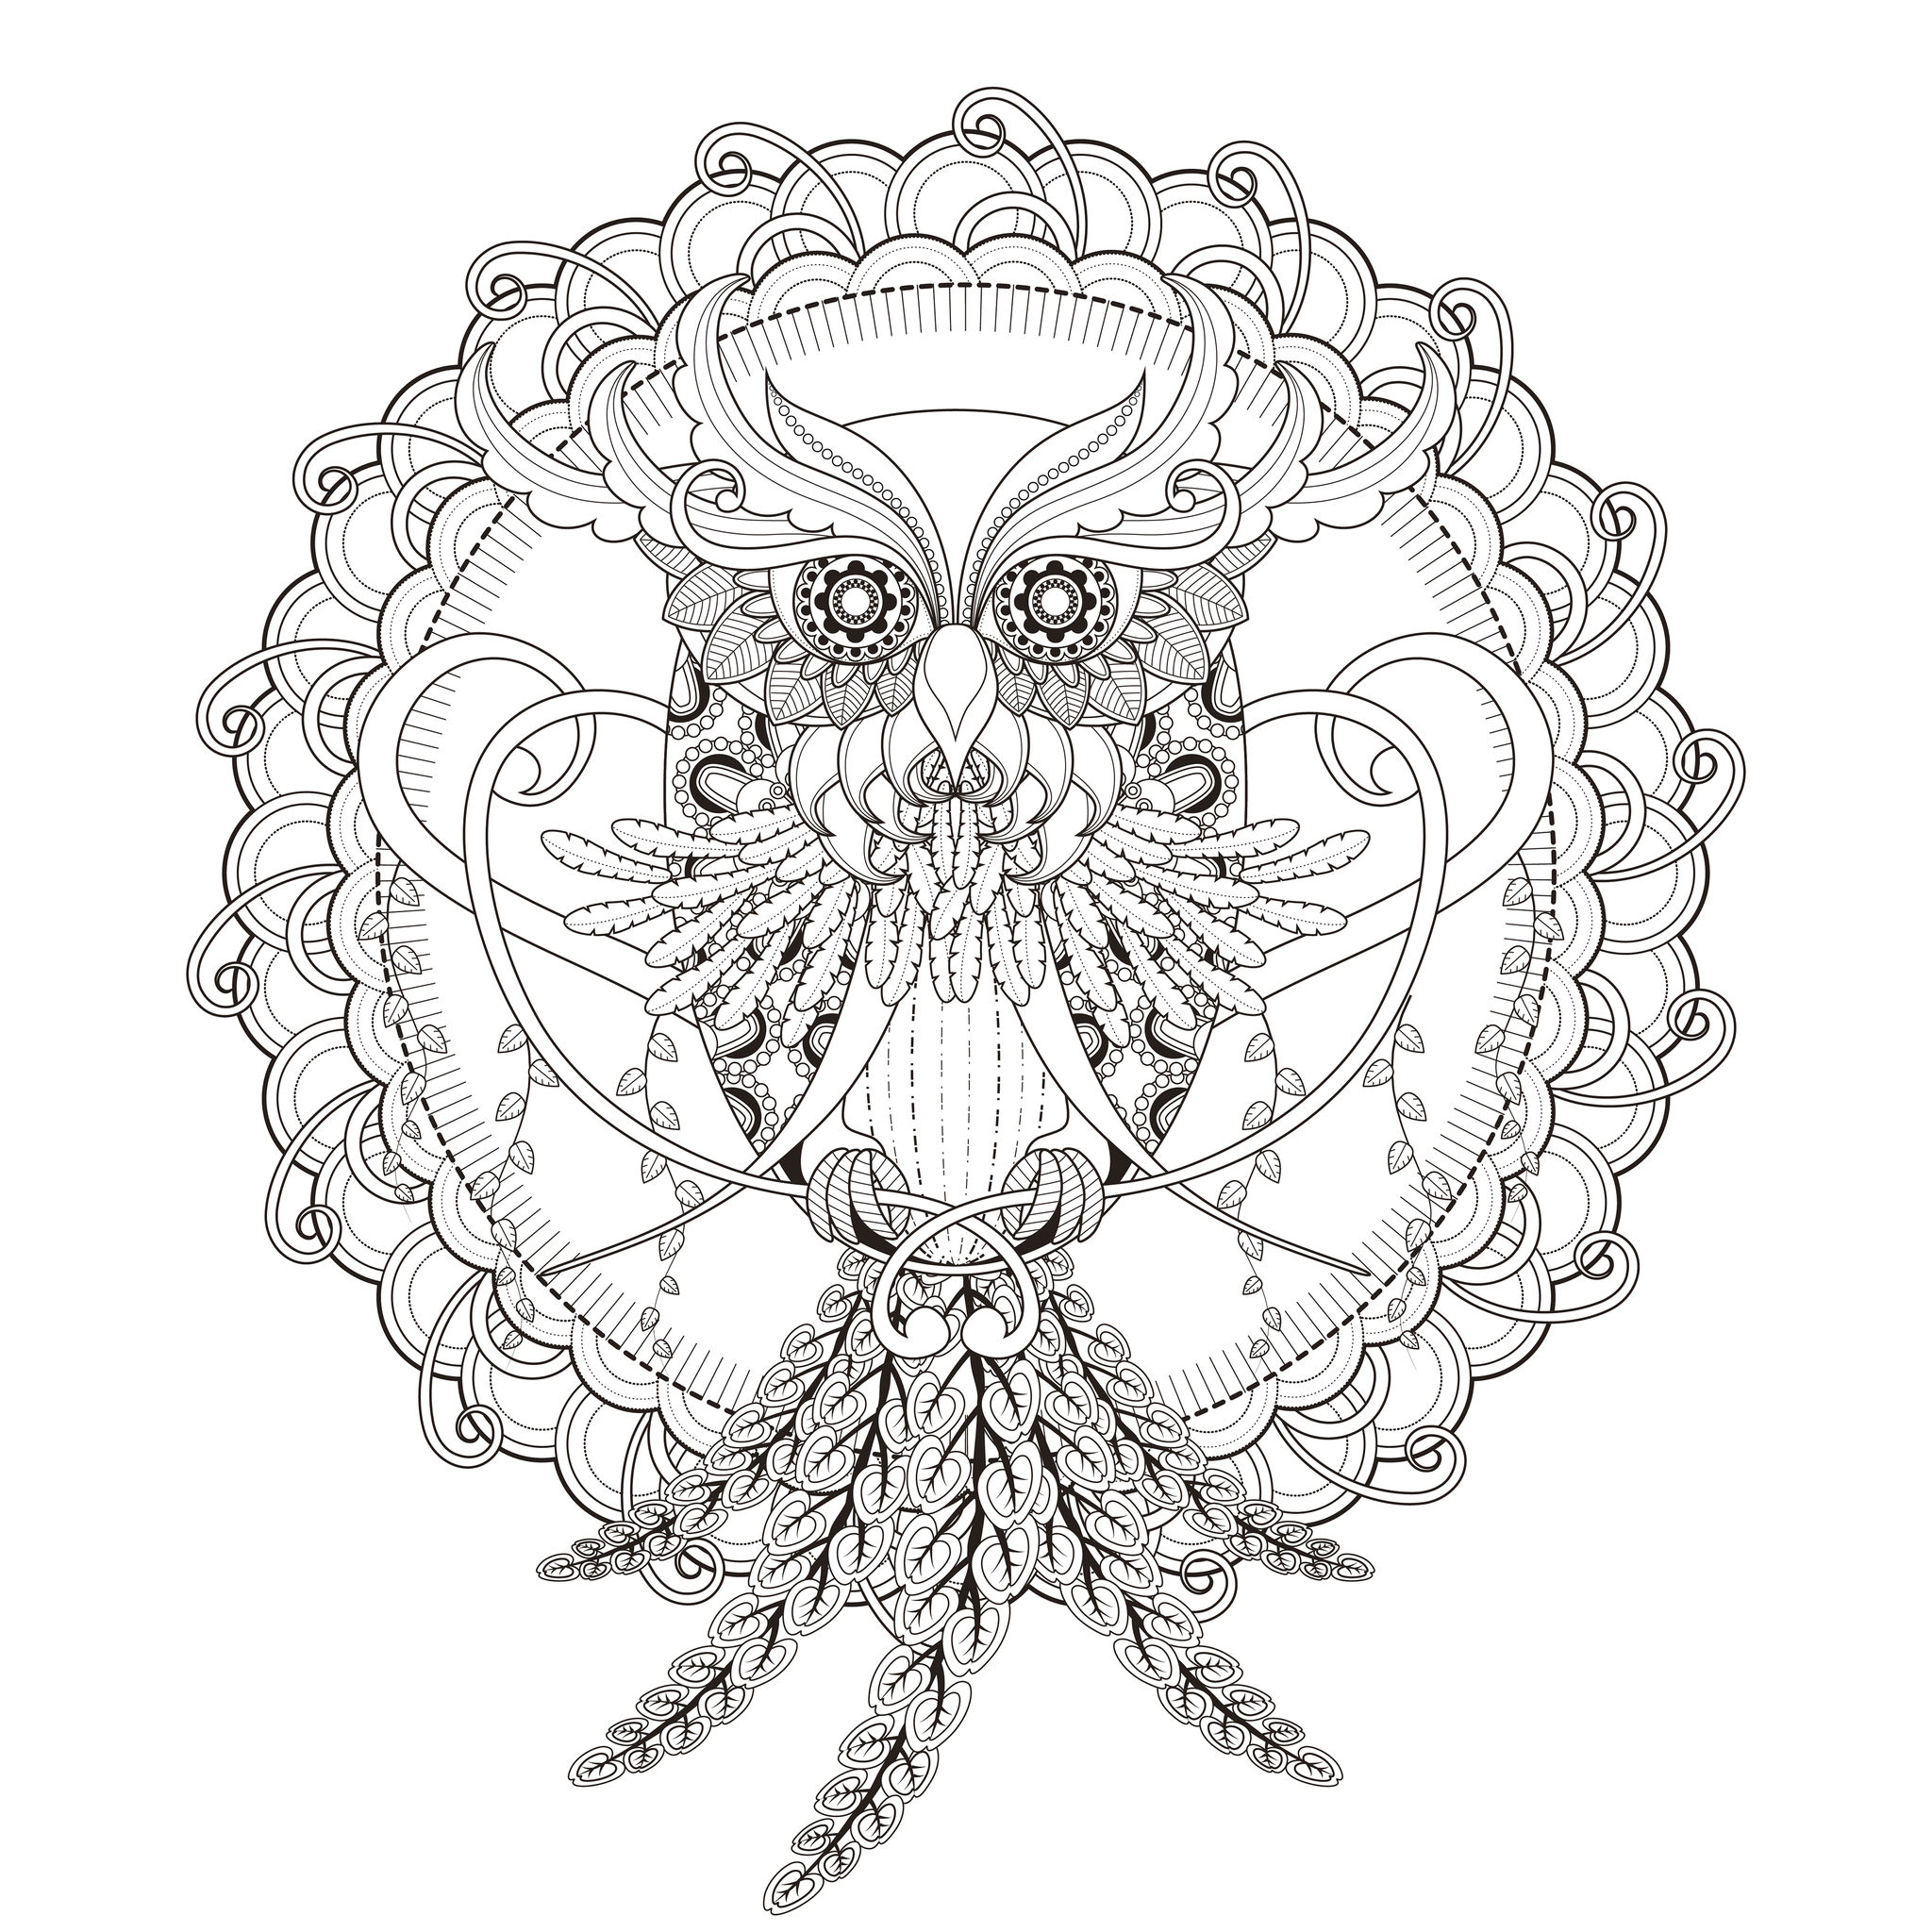 Mandala pages for coloring - Incredible Owl Mandala Coloring Page From The Gallery Mandalas Artist Kchung